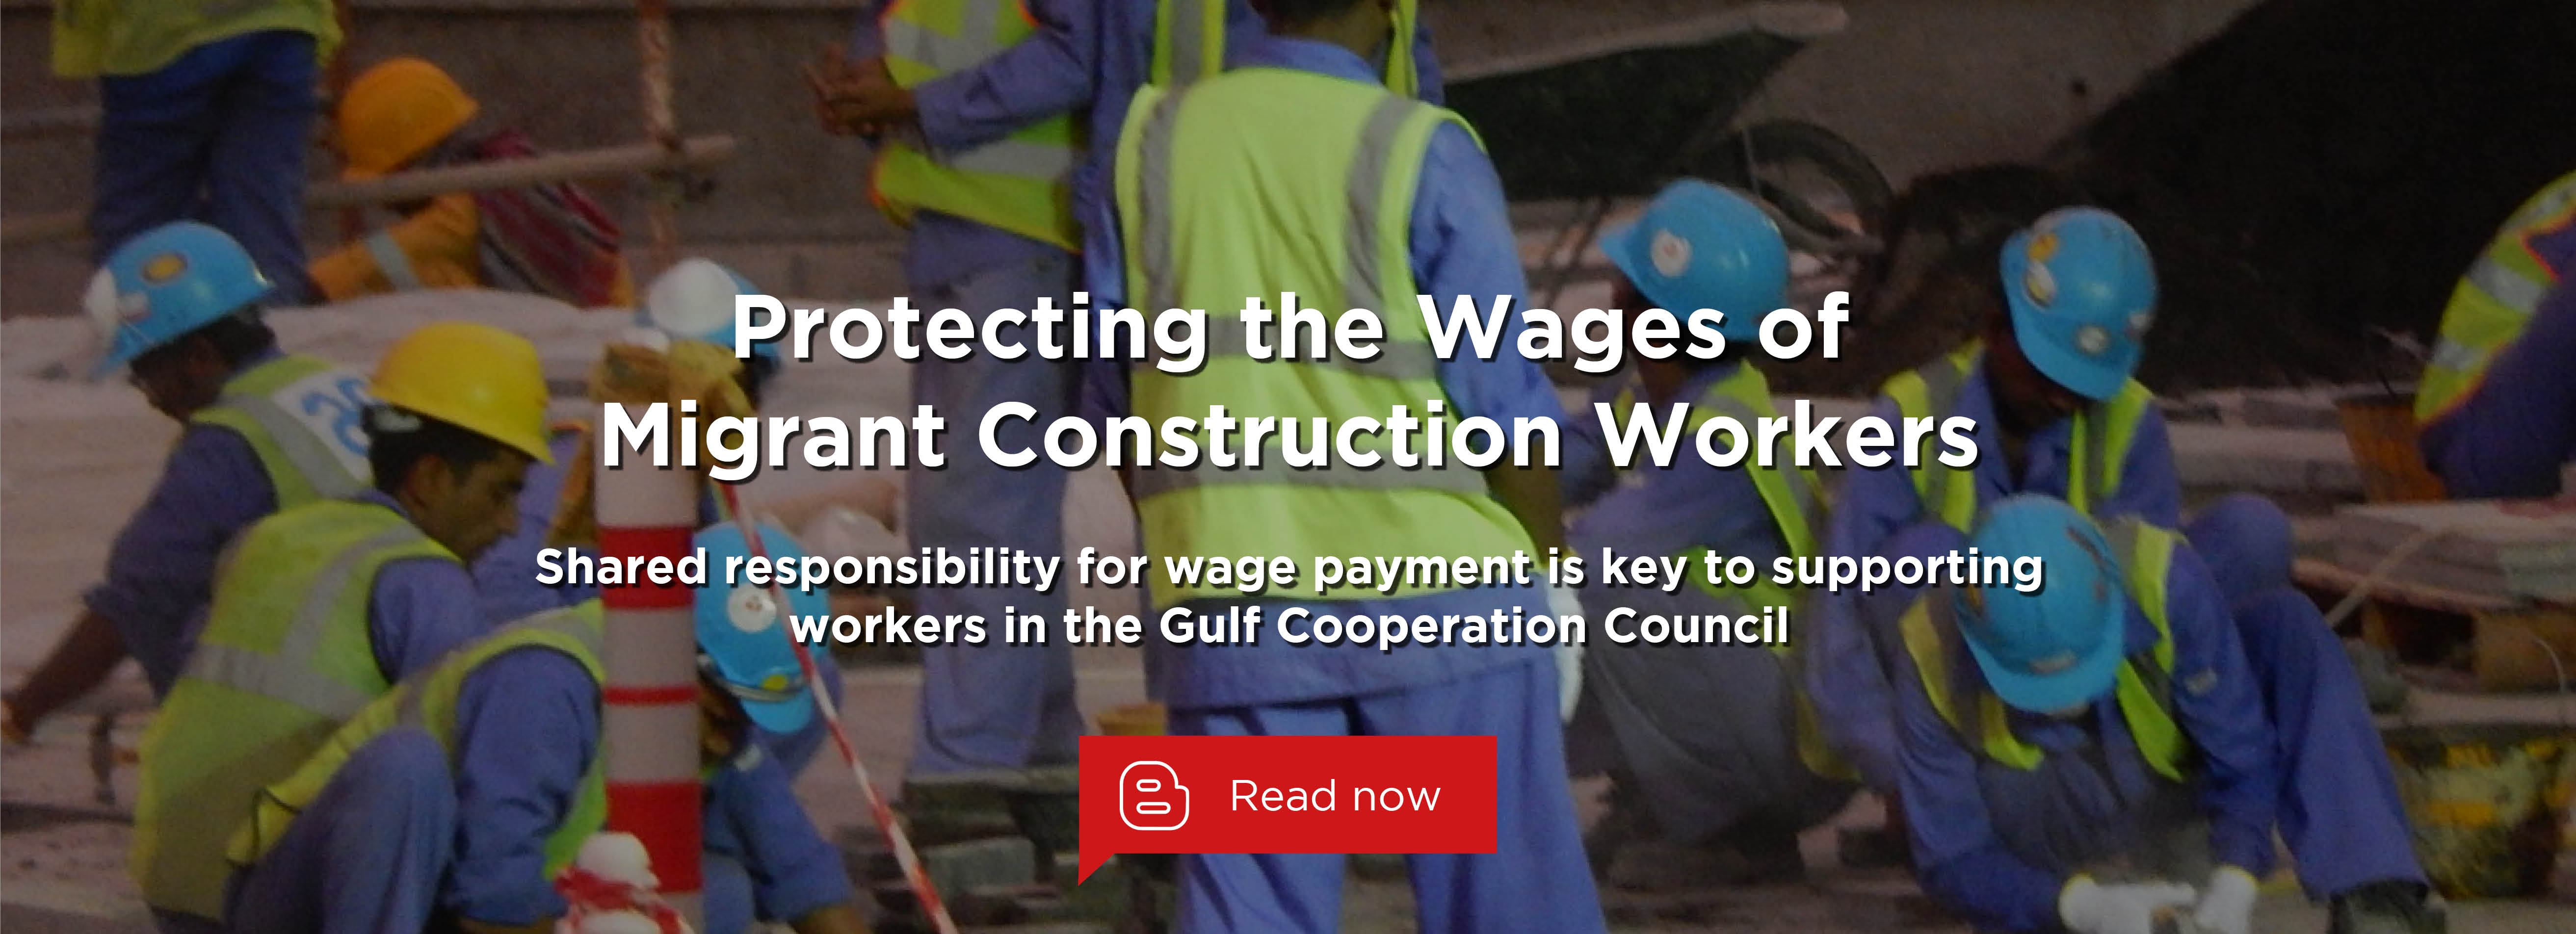 Protecting the Wages of Migrant Construction Workers